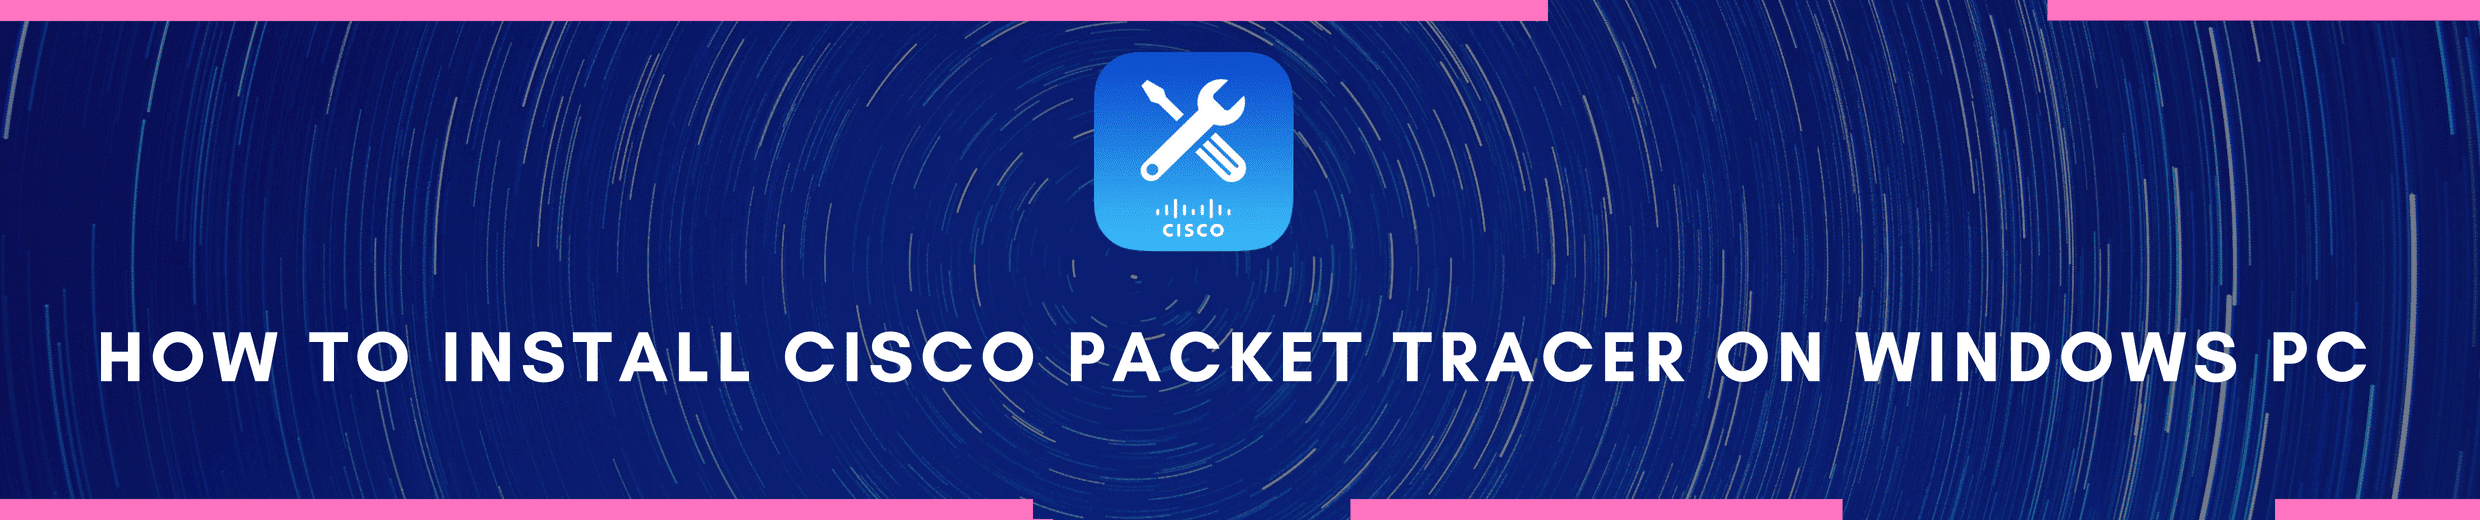 How to Install Cisco Packet Tracer On Windows PC